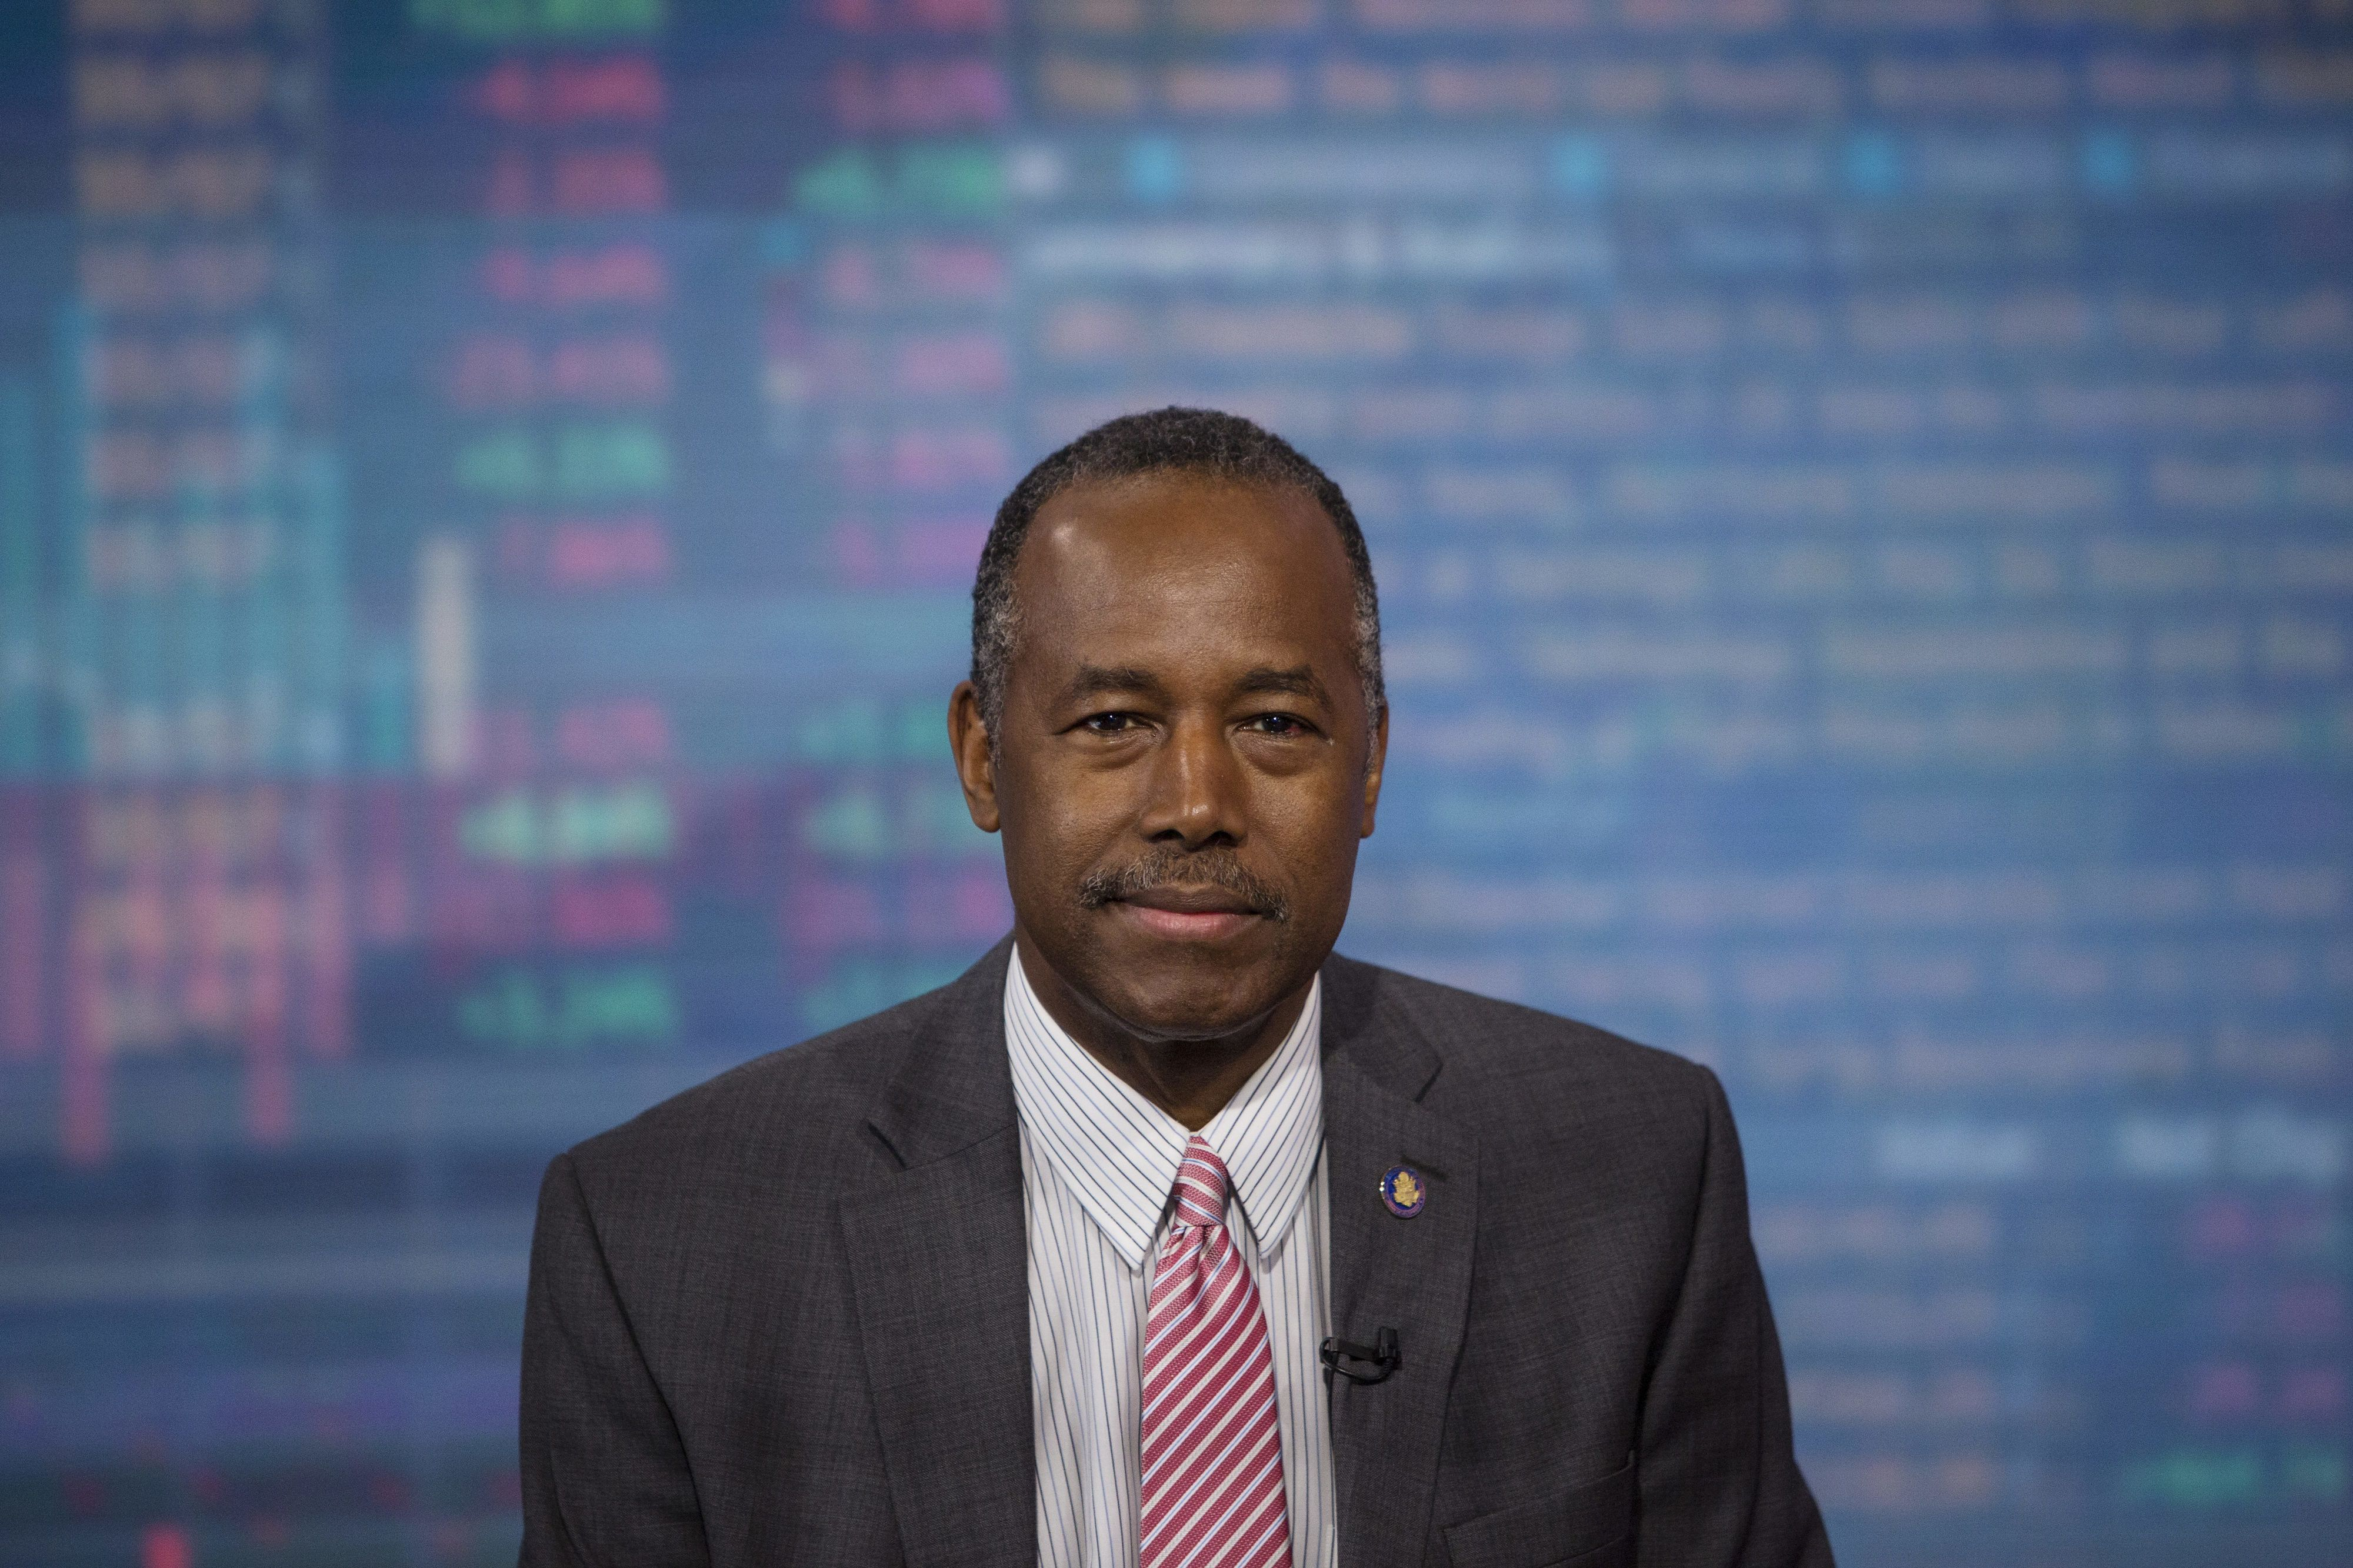 Ben Carson, secretary of Housing and Urban Development (HUD), smiles during a Bloomberg Television interview in New York, U.S., on Tuesday, June 13, 2017. Carson discussed ideas being developed to open up home ownership in the United States with a focus on millennials burdened with student debt. Photographer: Victor J. Blue/Bloomberg via Getty Images